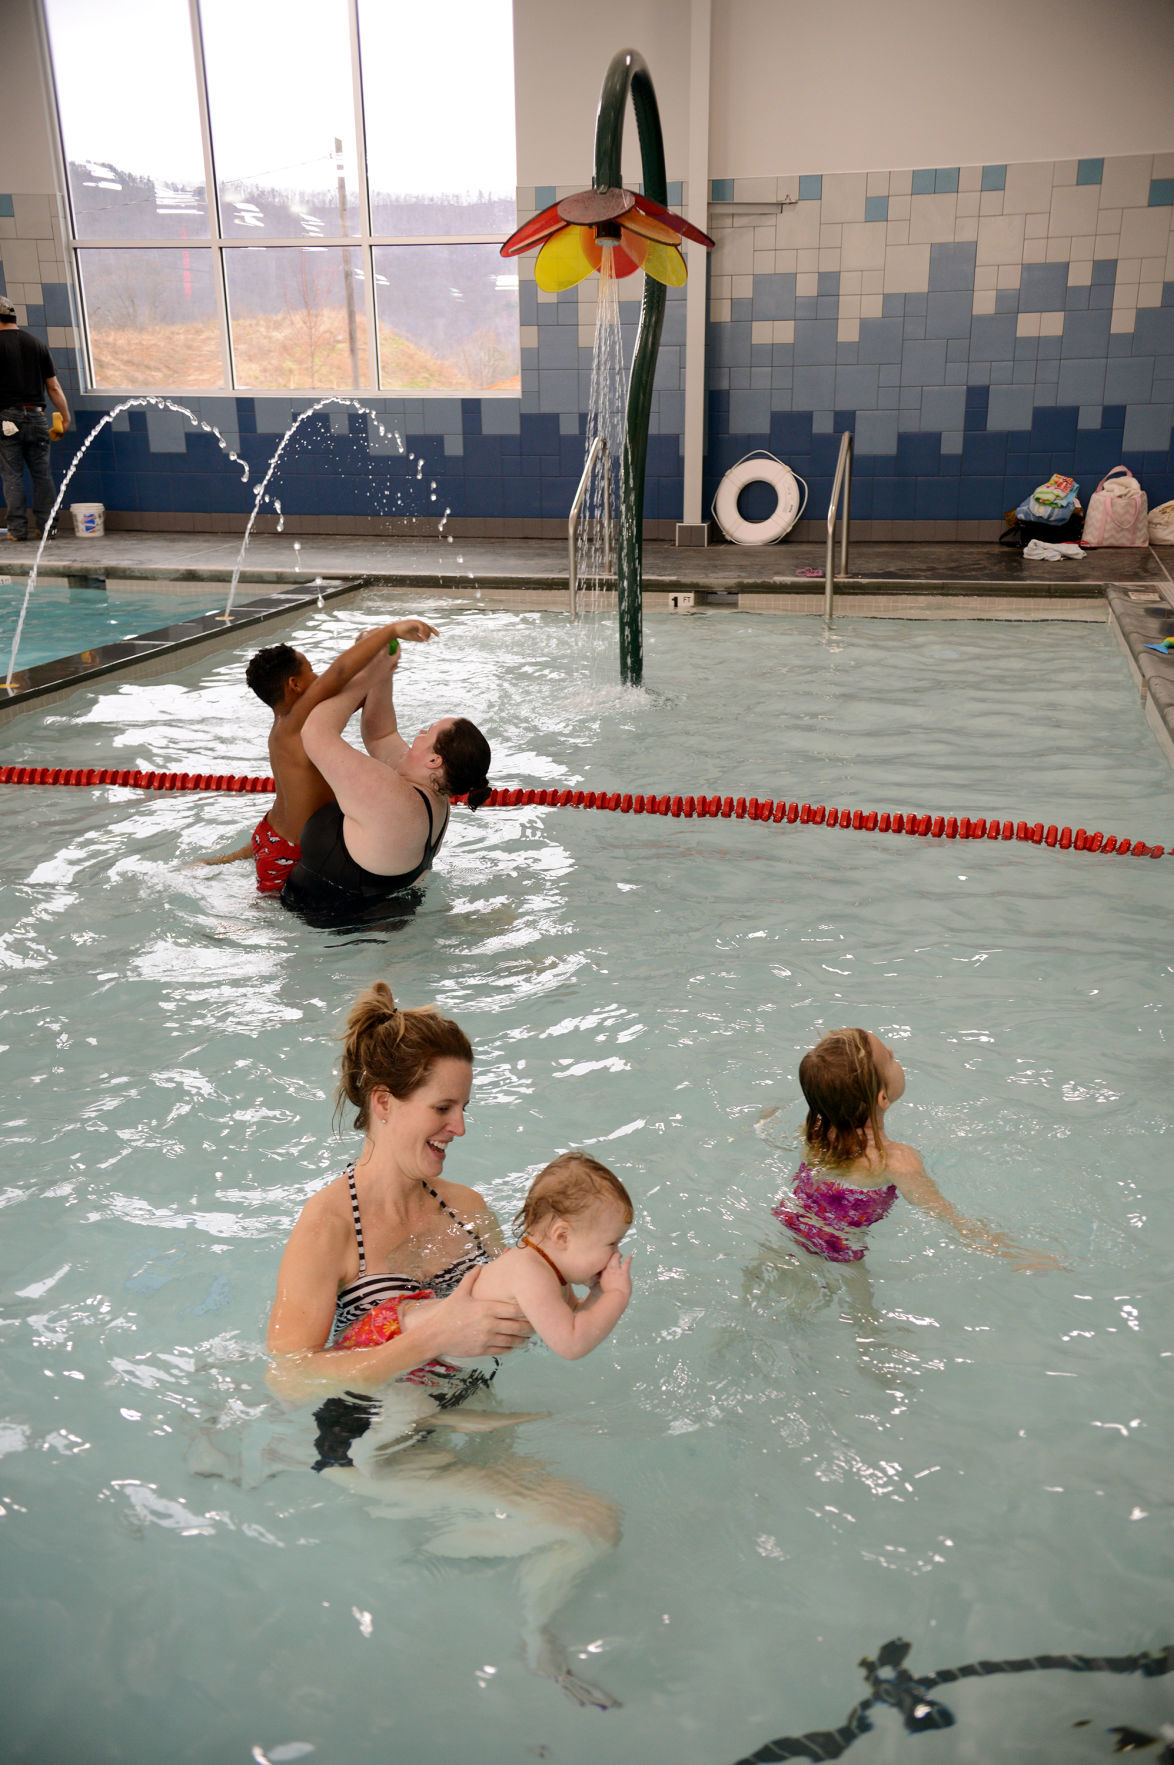 Botetourt Family YMCA opens its doors with 500 new members